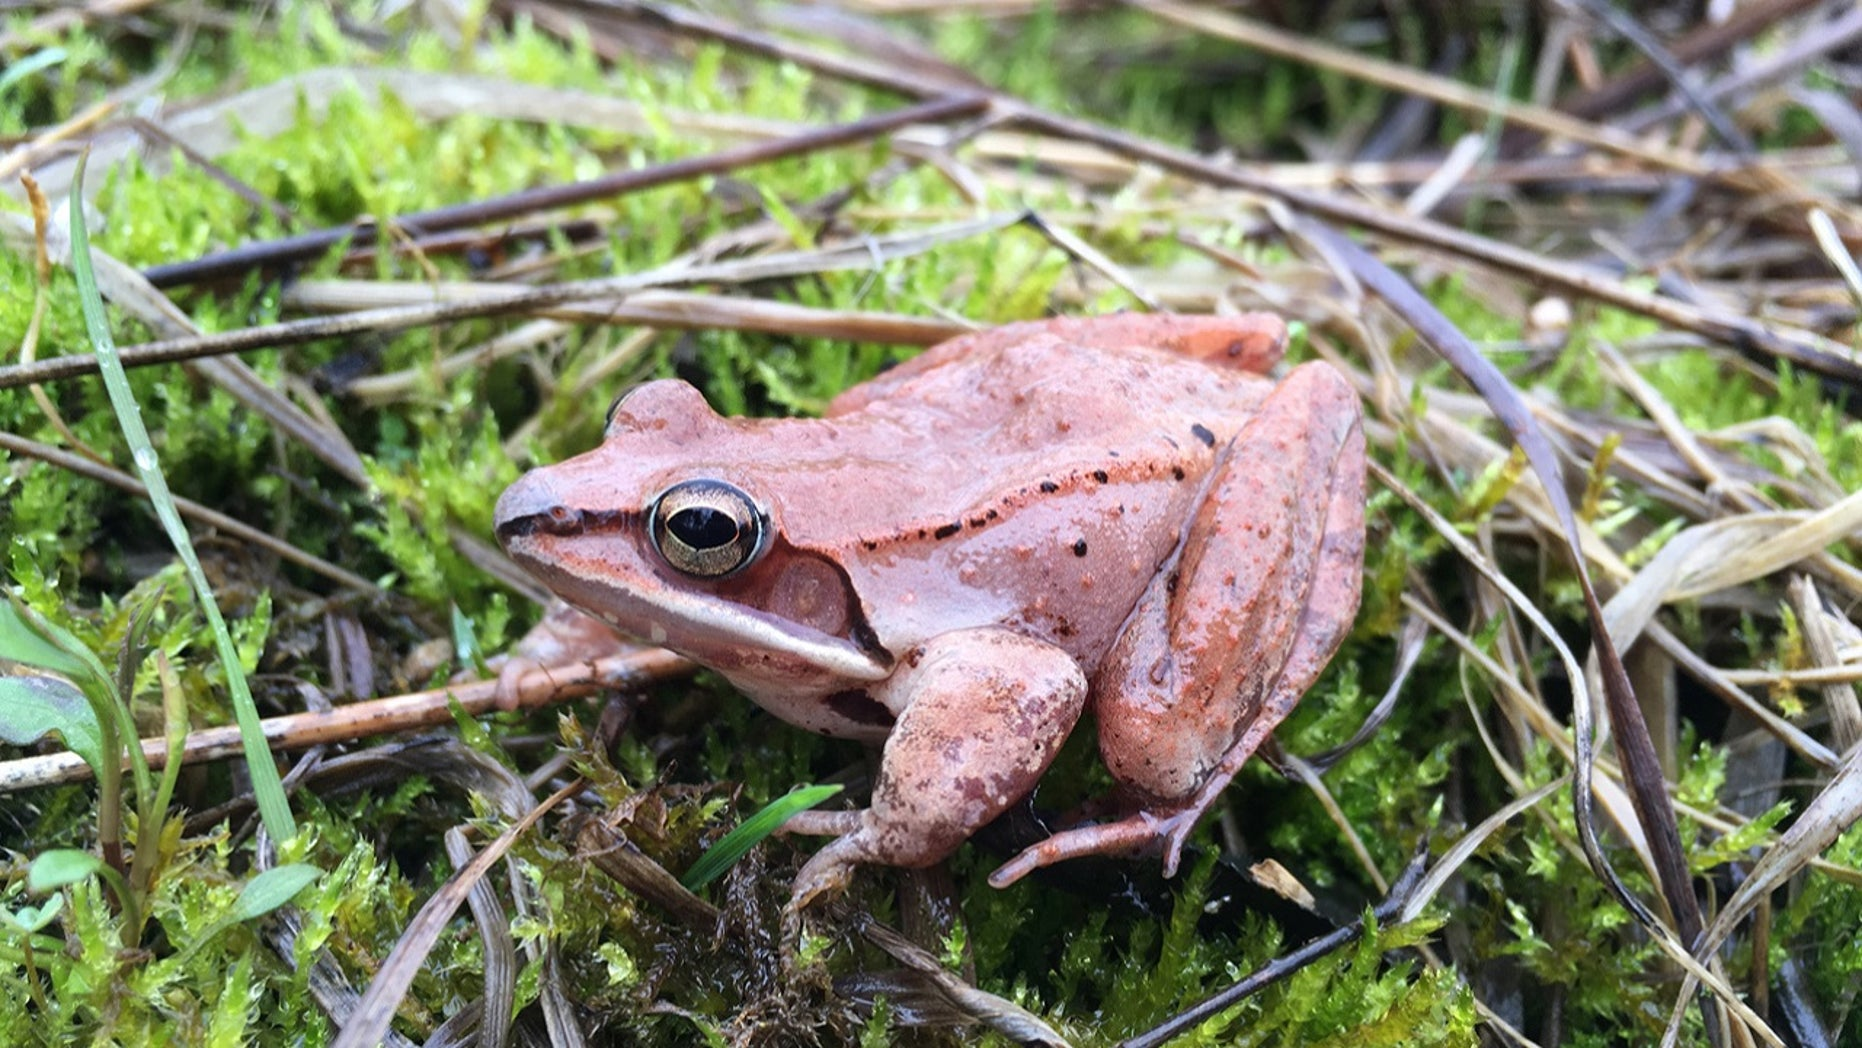 A wood frog is seen in Ohio, April 24, 2018. In a report released May 1, 2018, scientists have found that wood frogs, which don't urinate in the winter, recycle urea, the main waste in urine, into useful nitrogen which keeps the small animals alive as they hibernate and freeze.